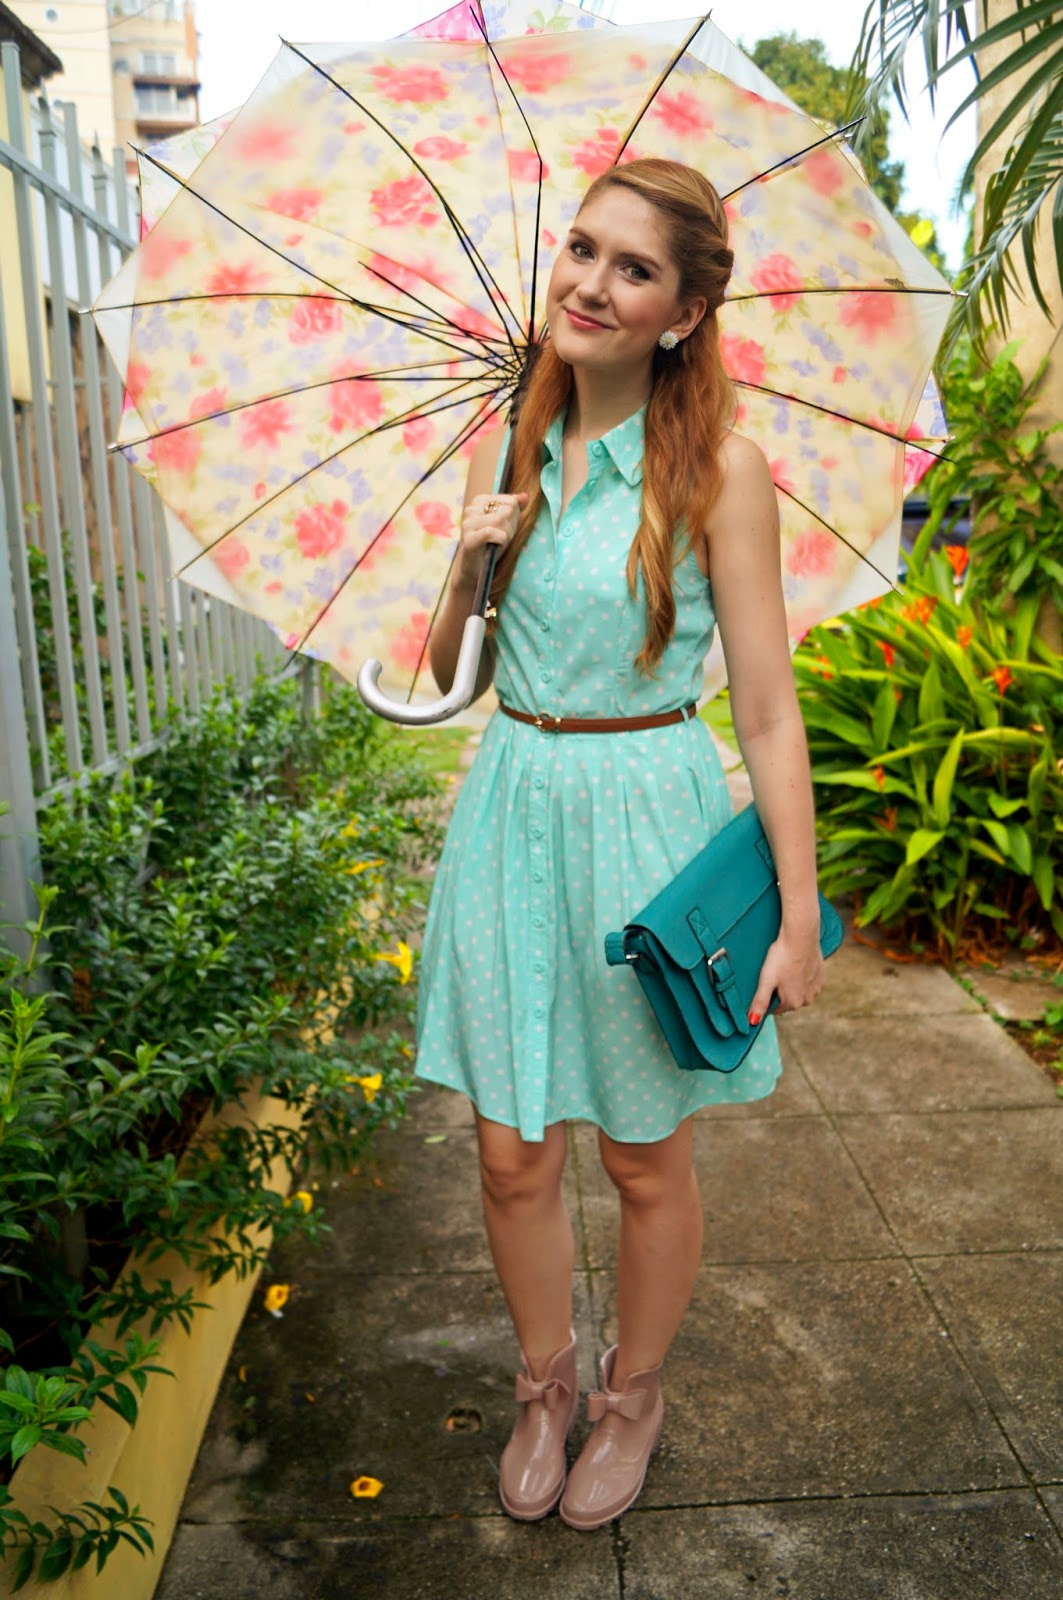 The Joy of Fashion {Outfit} Cute Look for Rainy Days